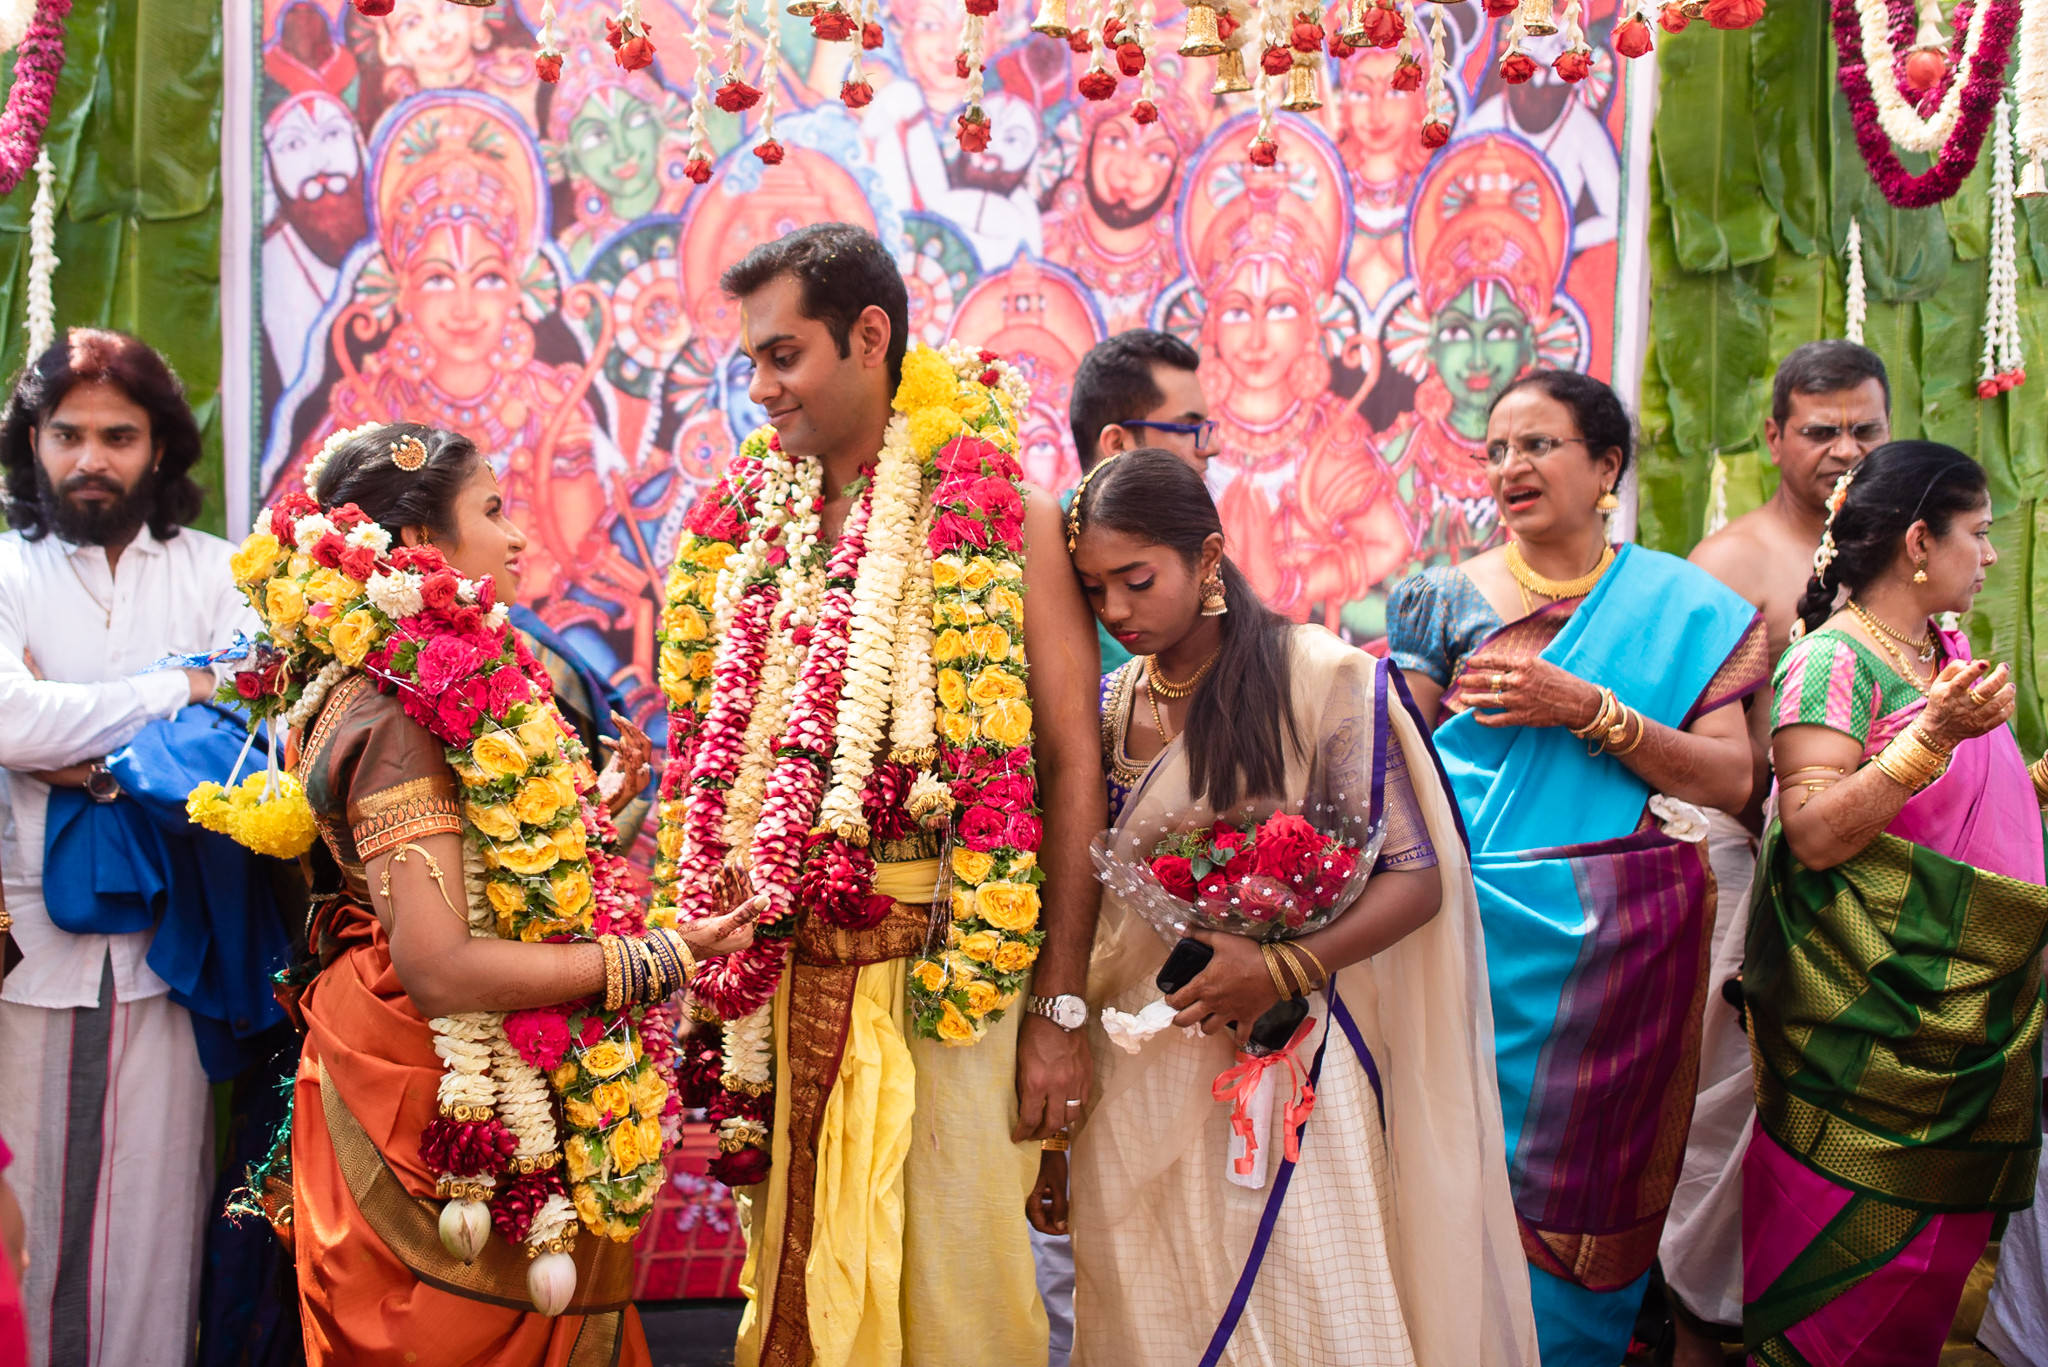 temple-tree-wedding-bangalore-095.jpg